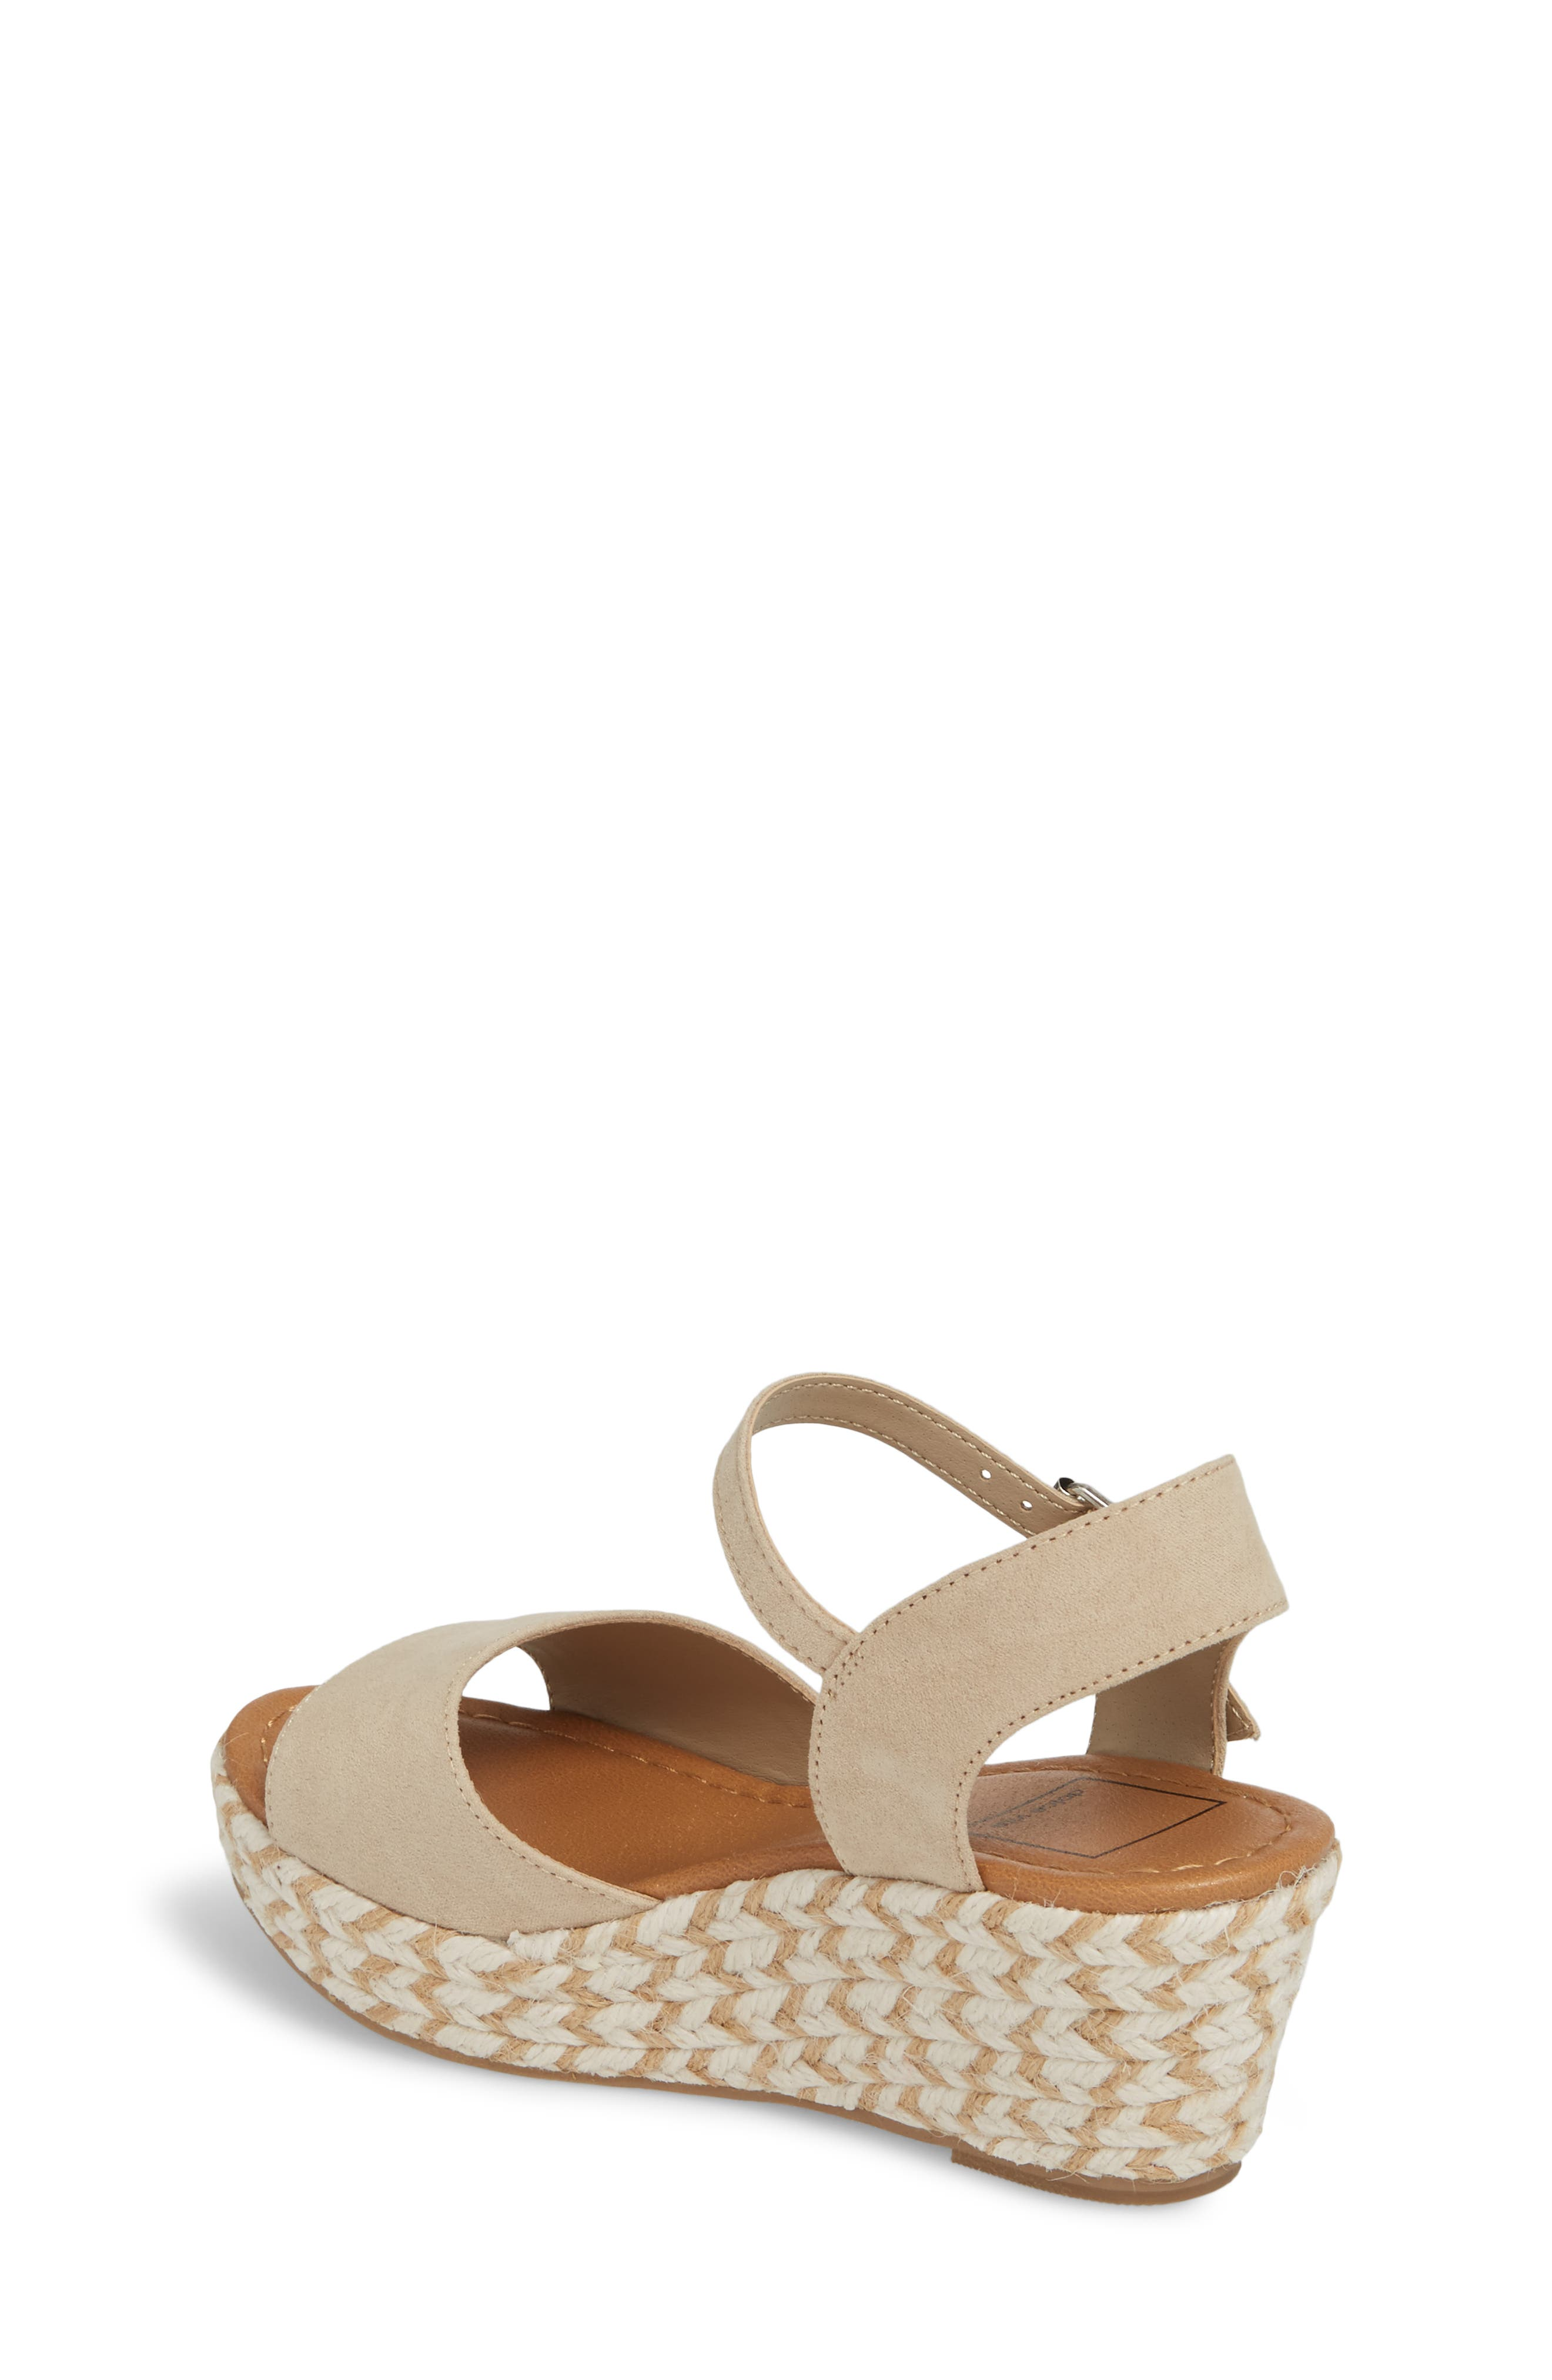 Wendy Espadrille Wedge Sandal,                             Alternate thumbnail 2, color,                             277